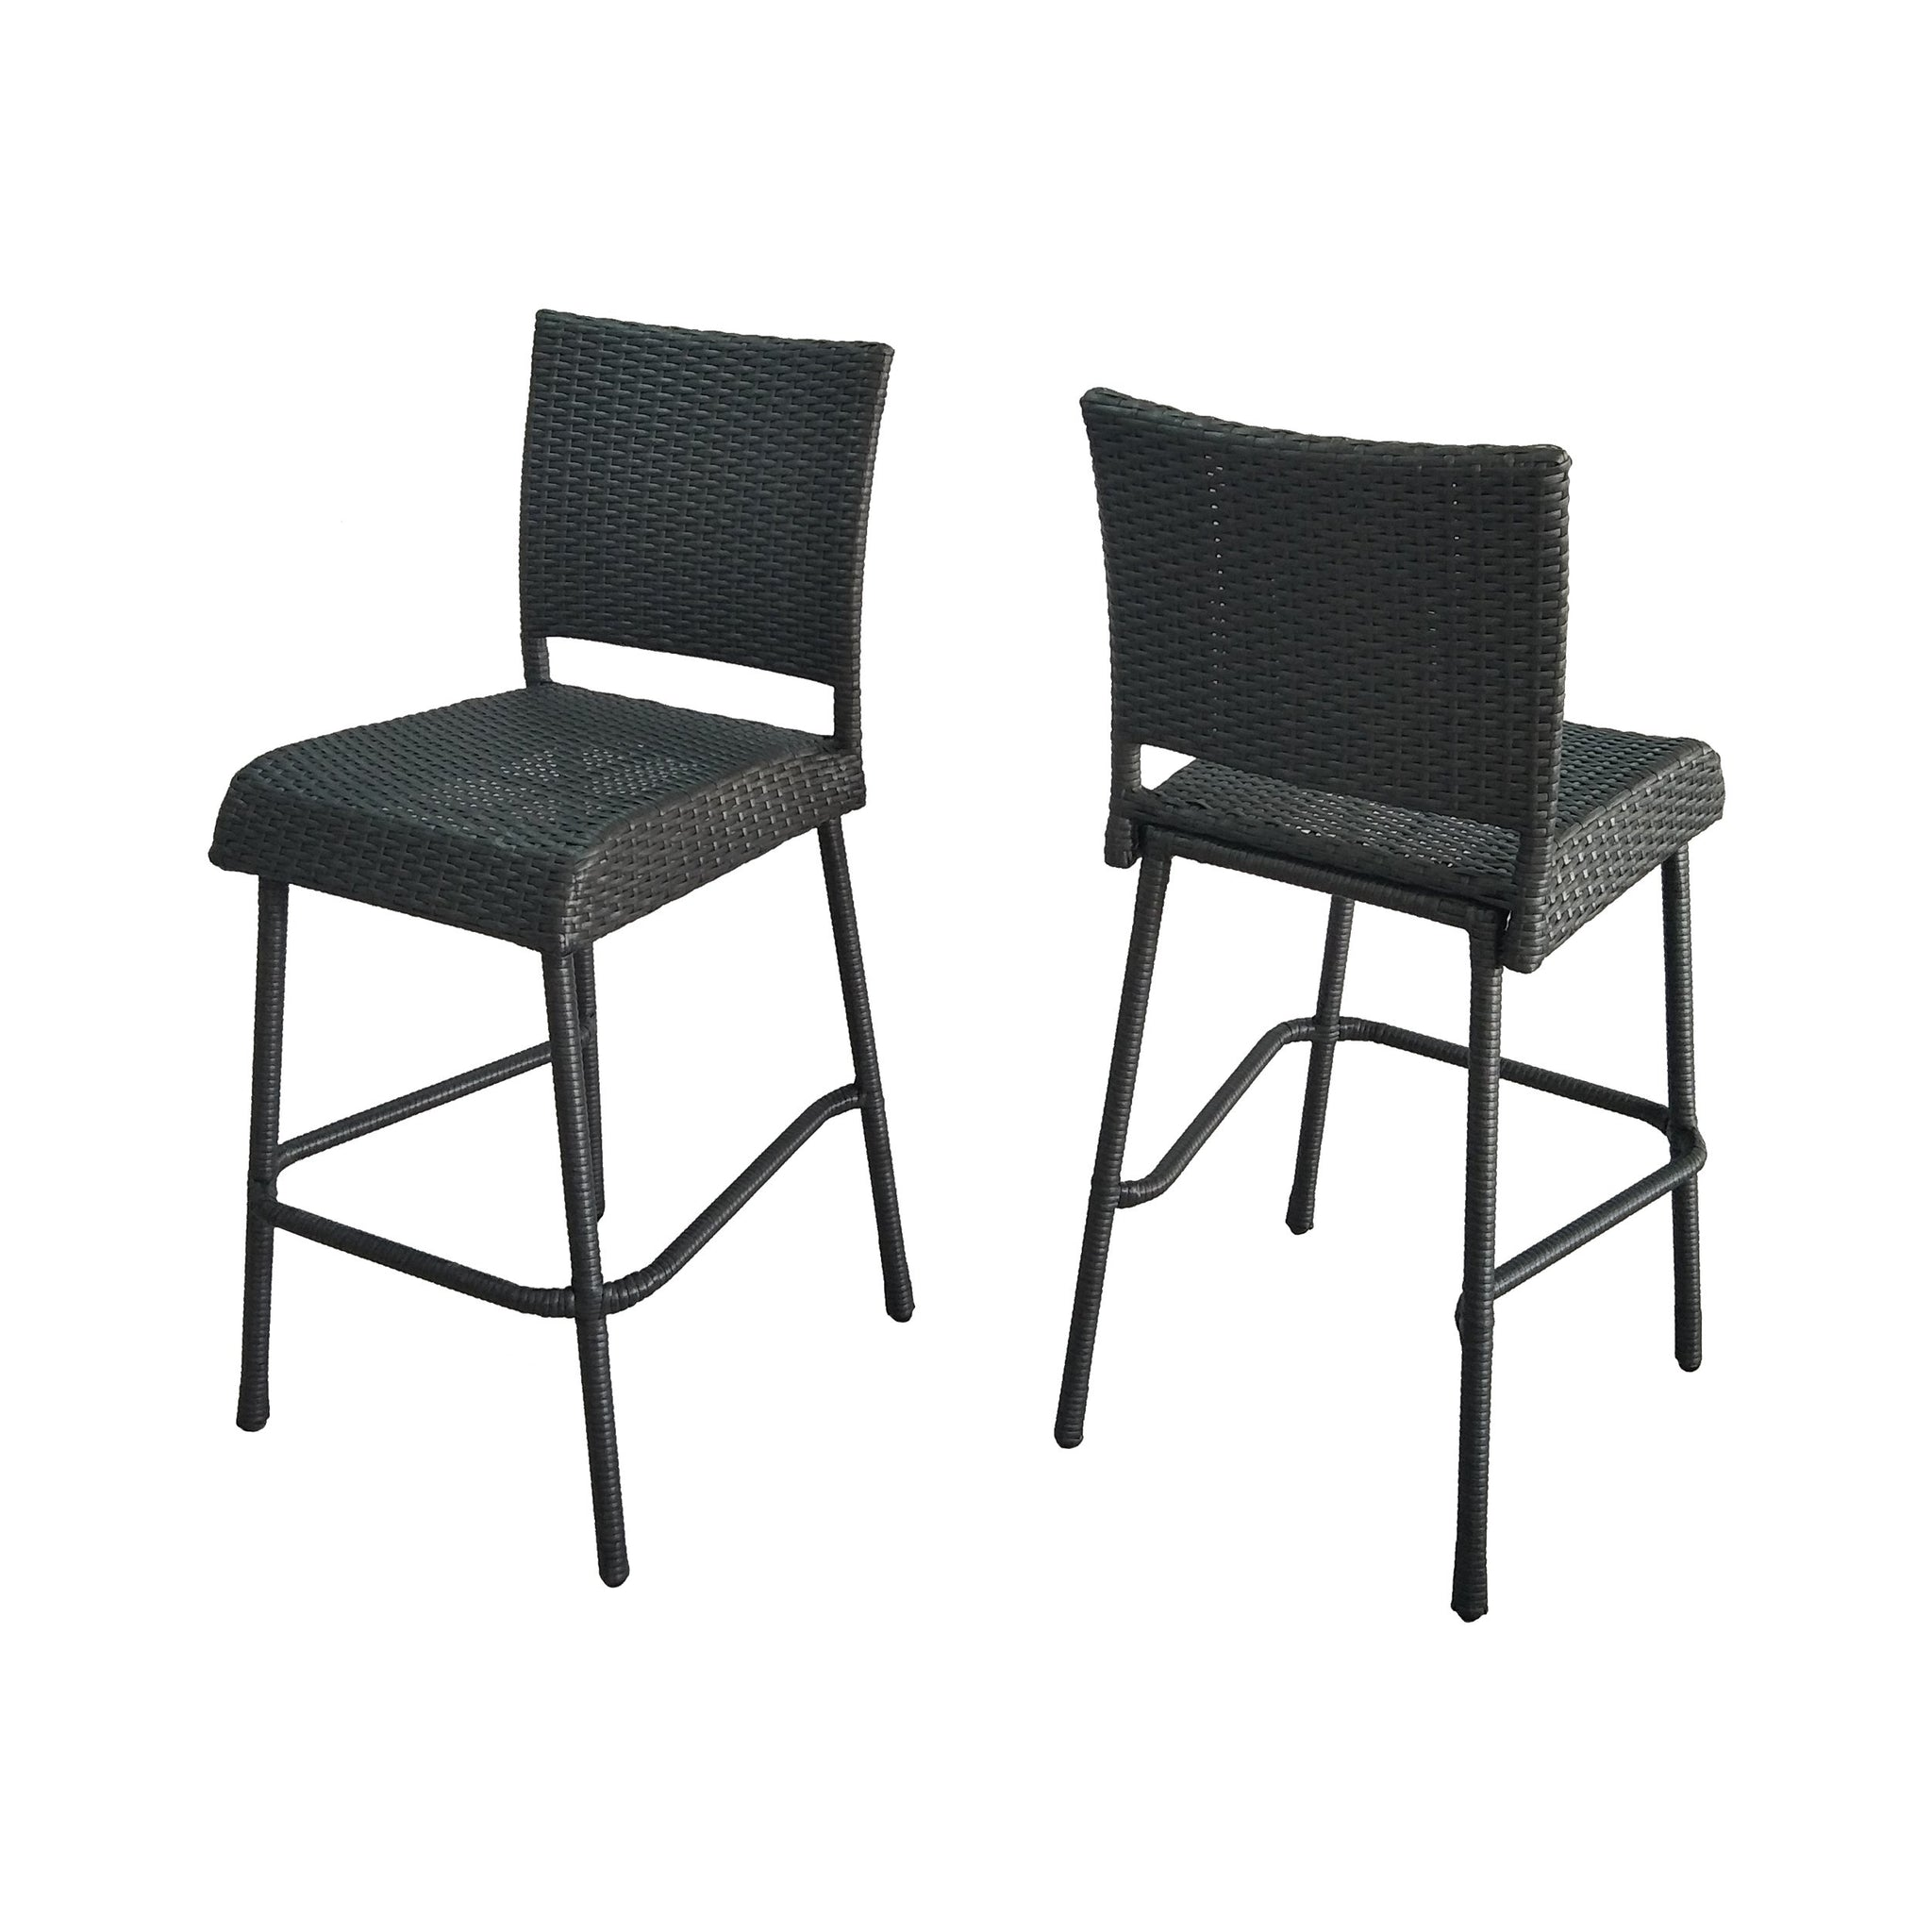 "Dominica Outdoor Wicker 29.5"" Barstools (Set Of 2)"